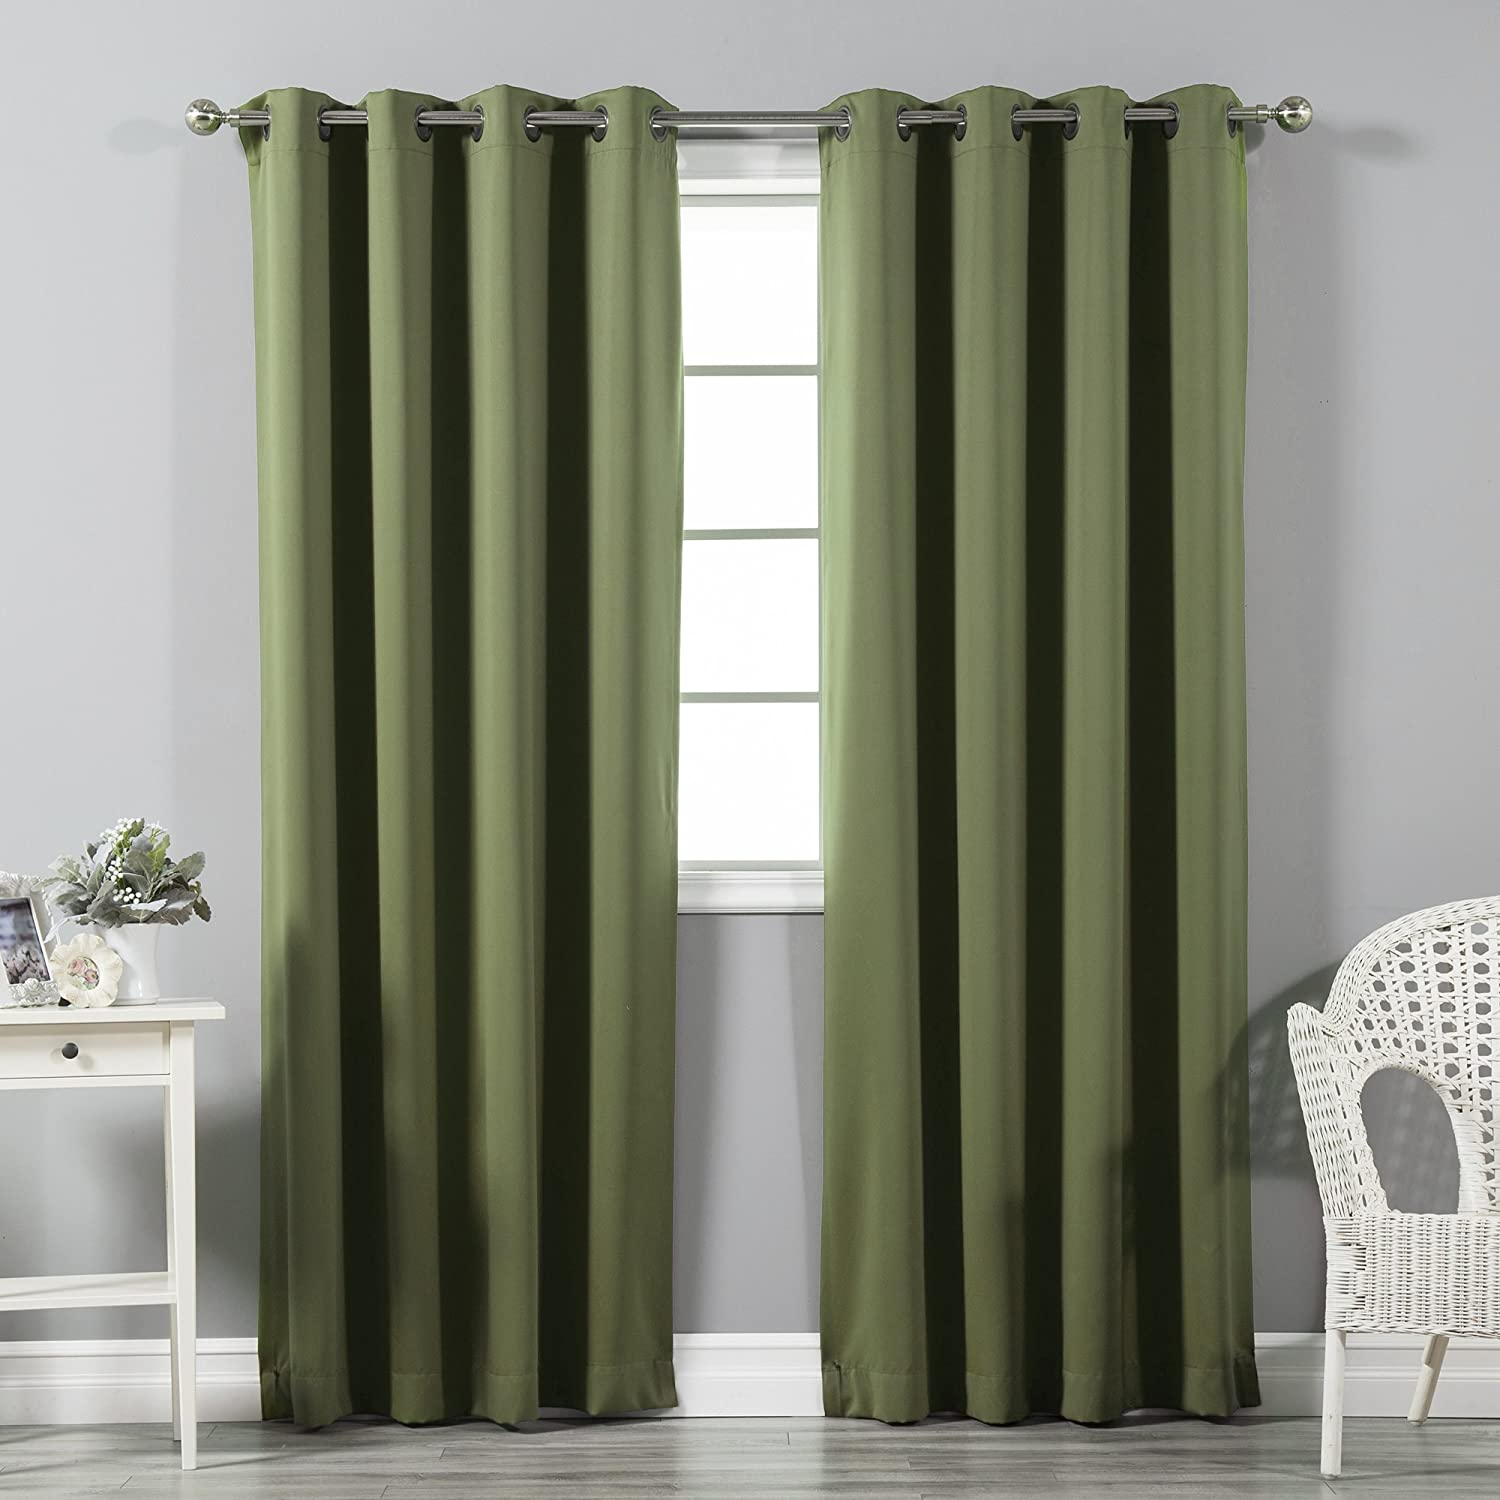 "Best Home Fashion Premium Thermal Insulated Blackout Curtains - Antique Bronze Grommet Top - Olive - 52"" W x 108"" L - Tie Backs Included (Set of 2 Panels)"